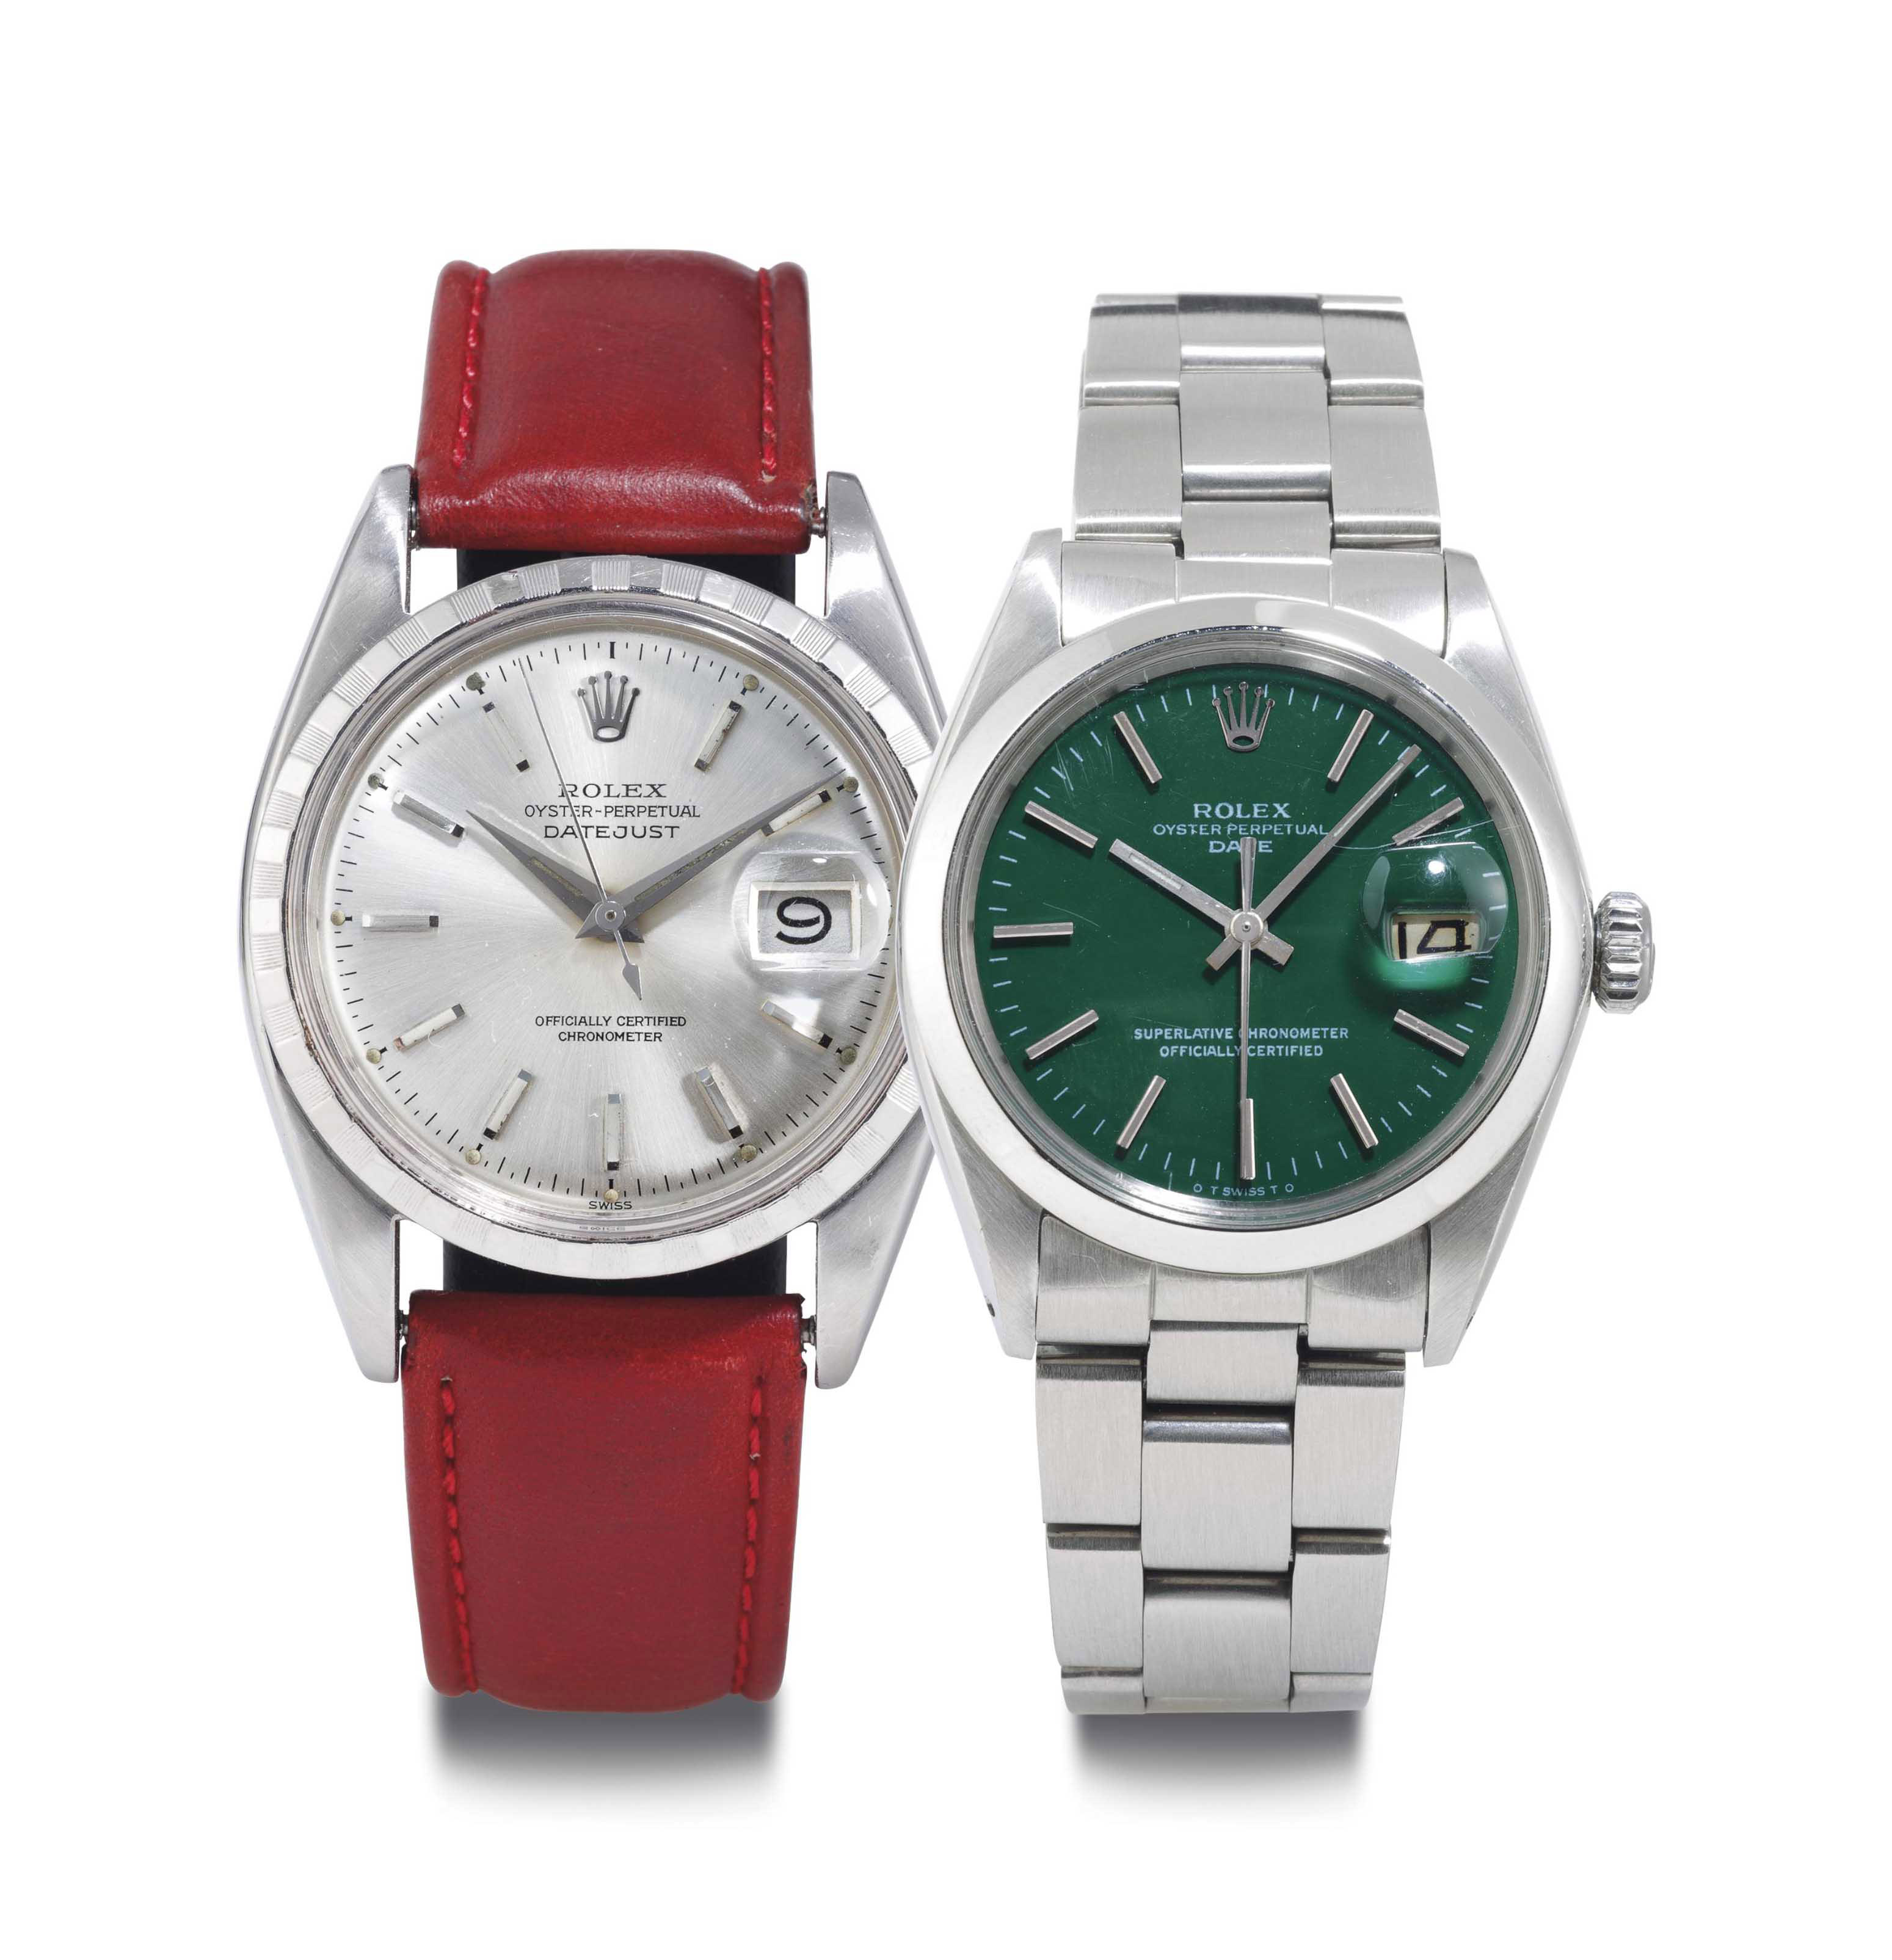 Rolex. A Pair Of Stainless Steel Automatic Wristwatches With Date And Center Seconds